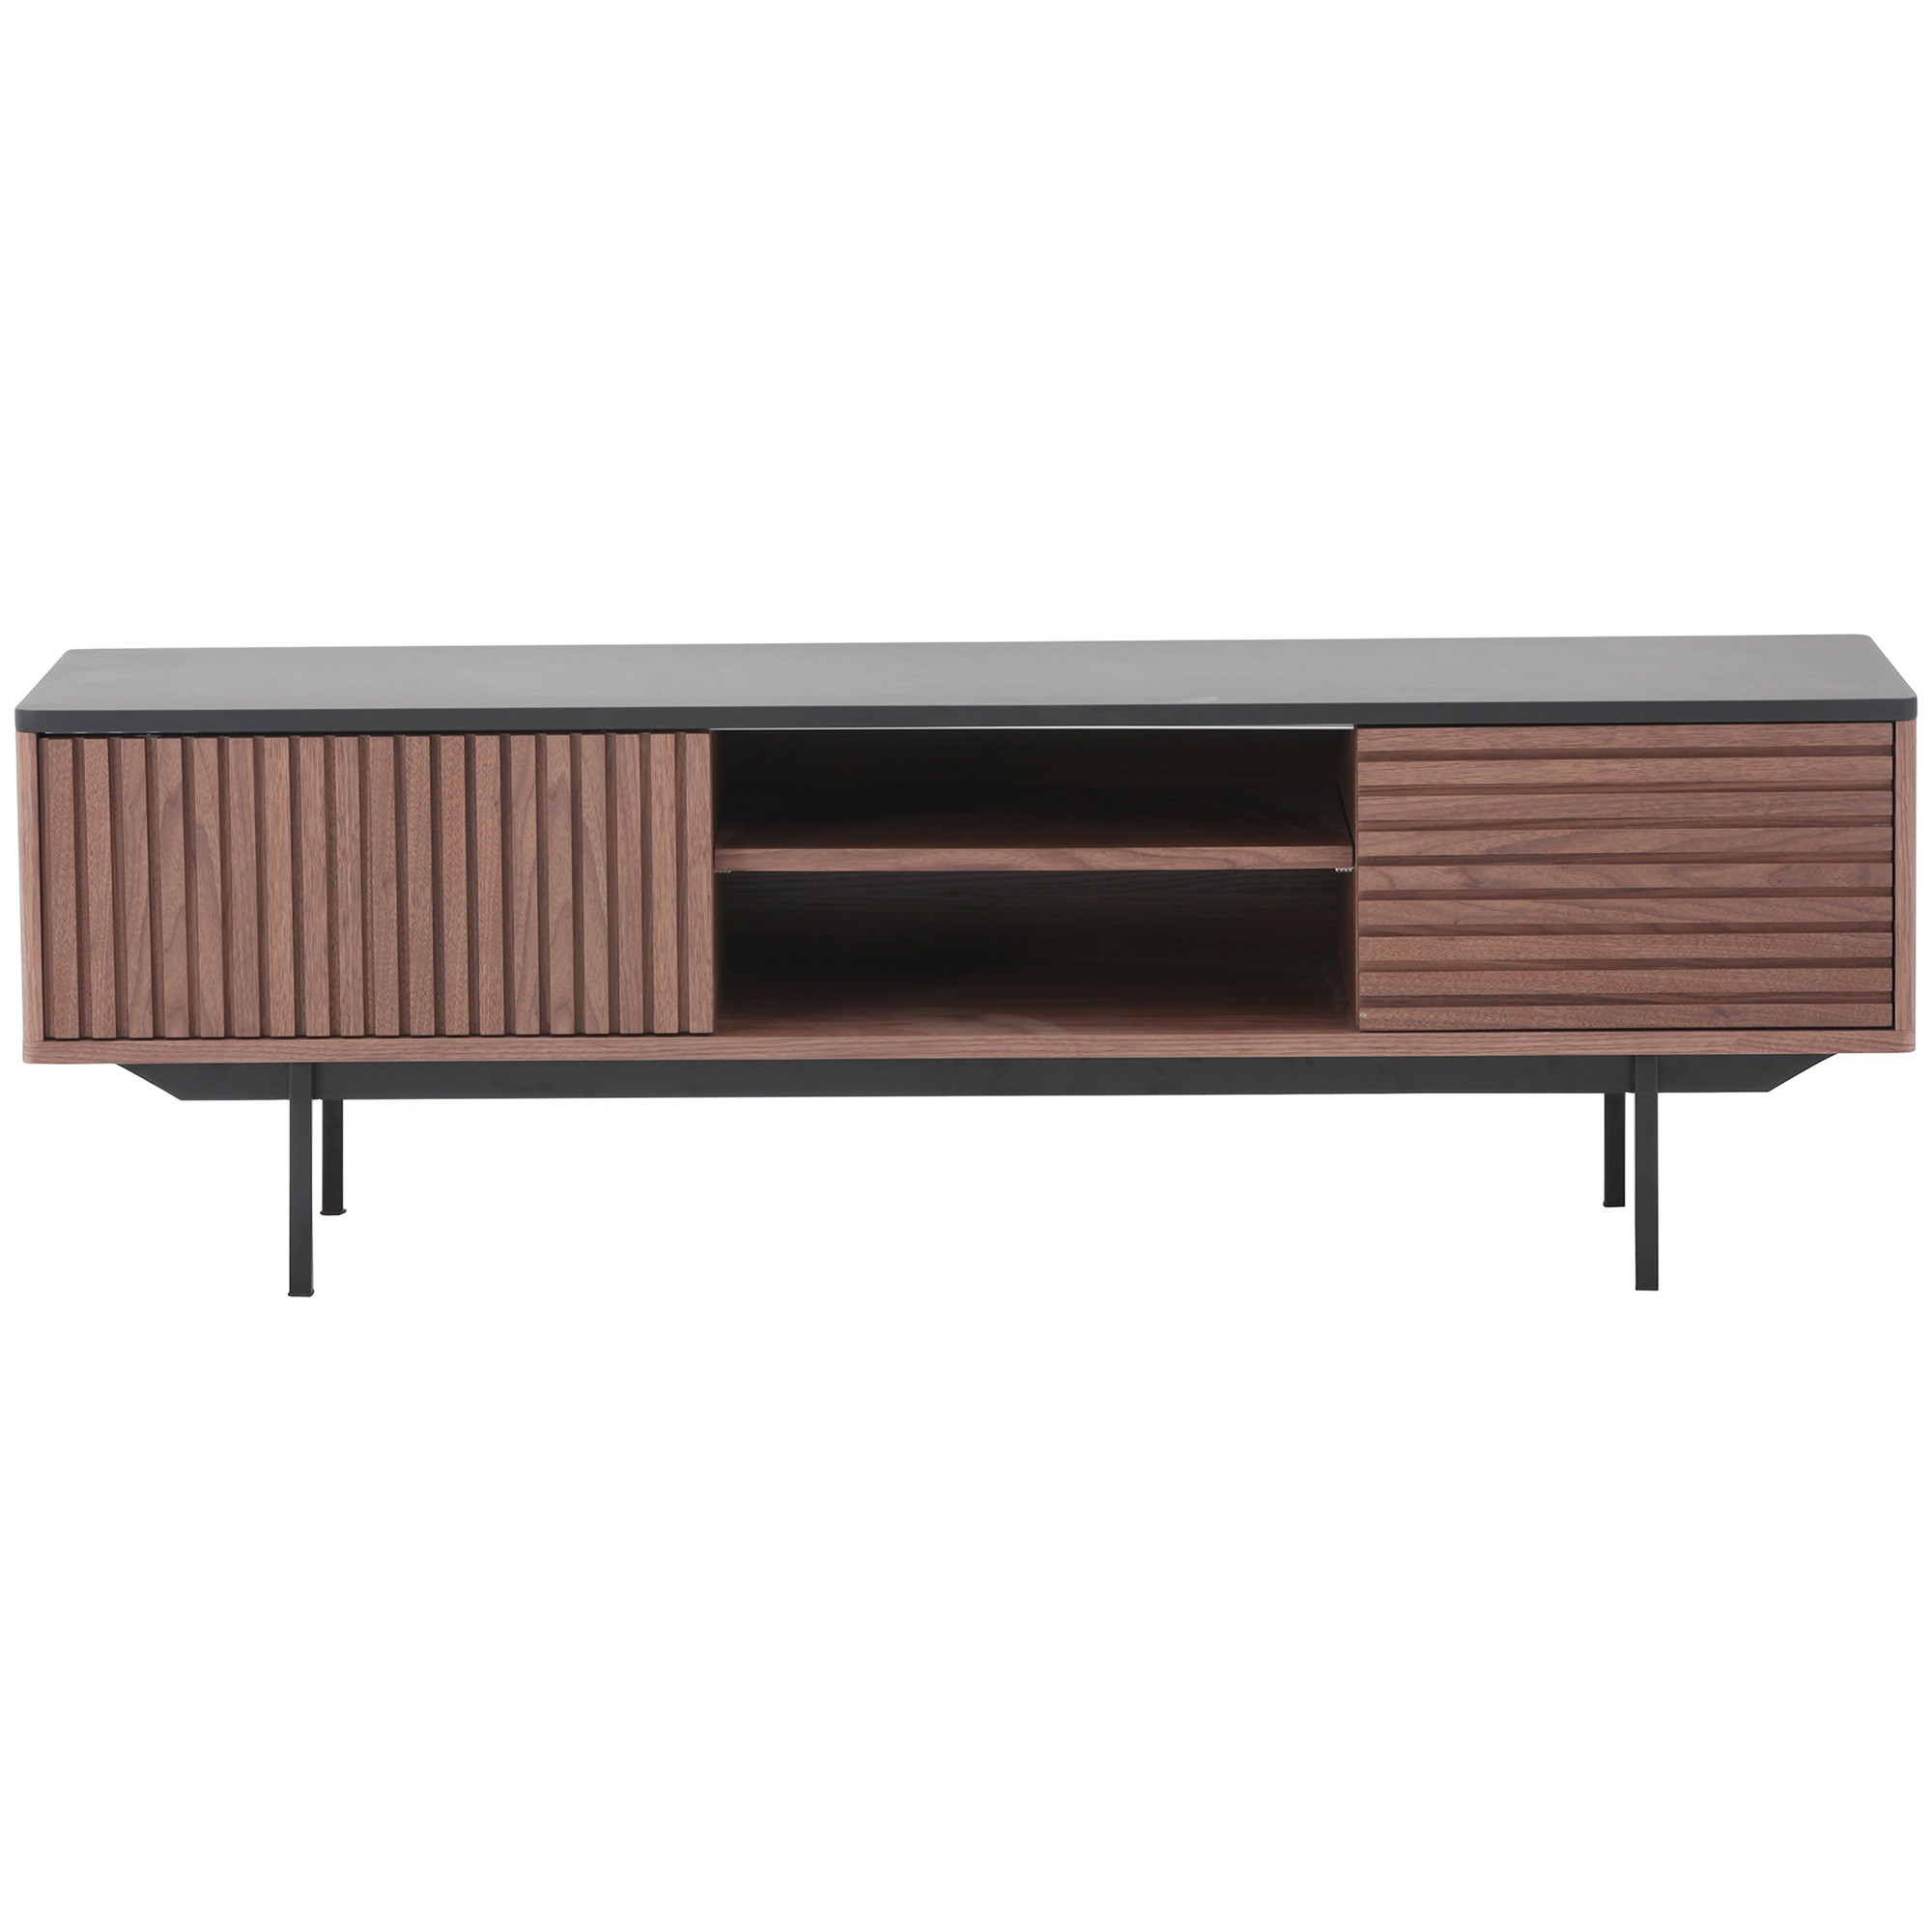 Tozzi Wood & Metal TV Unit, 160cm